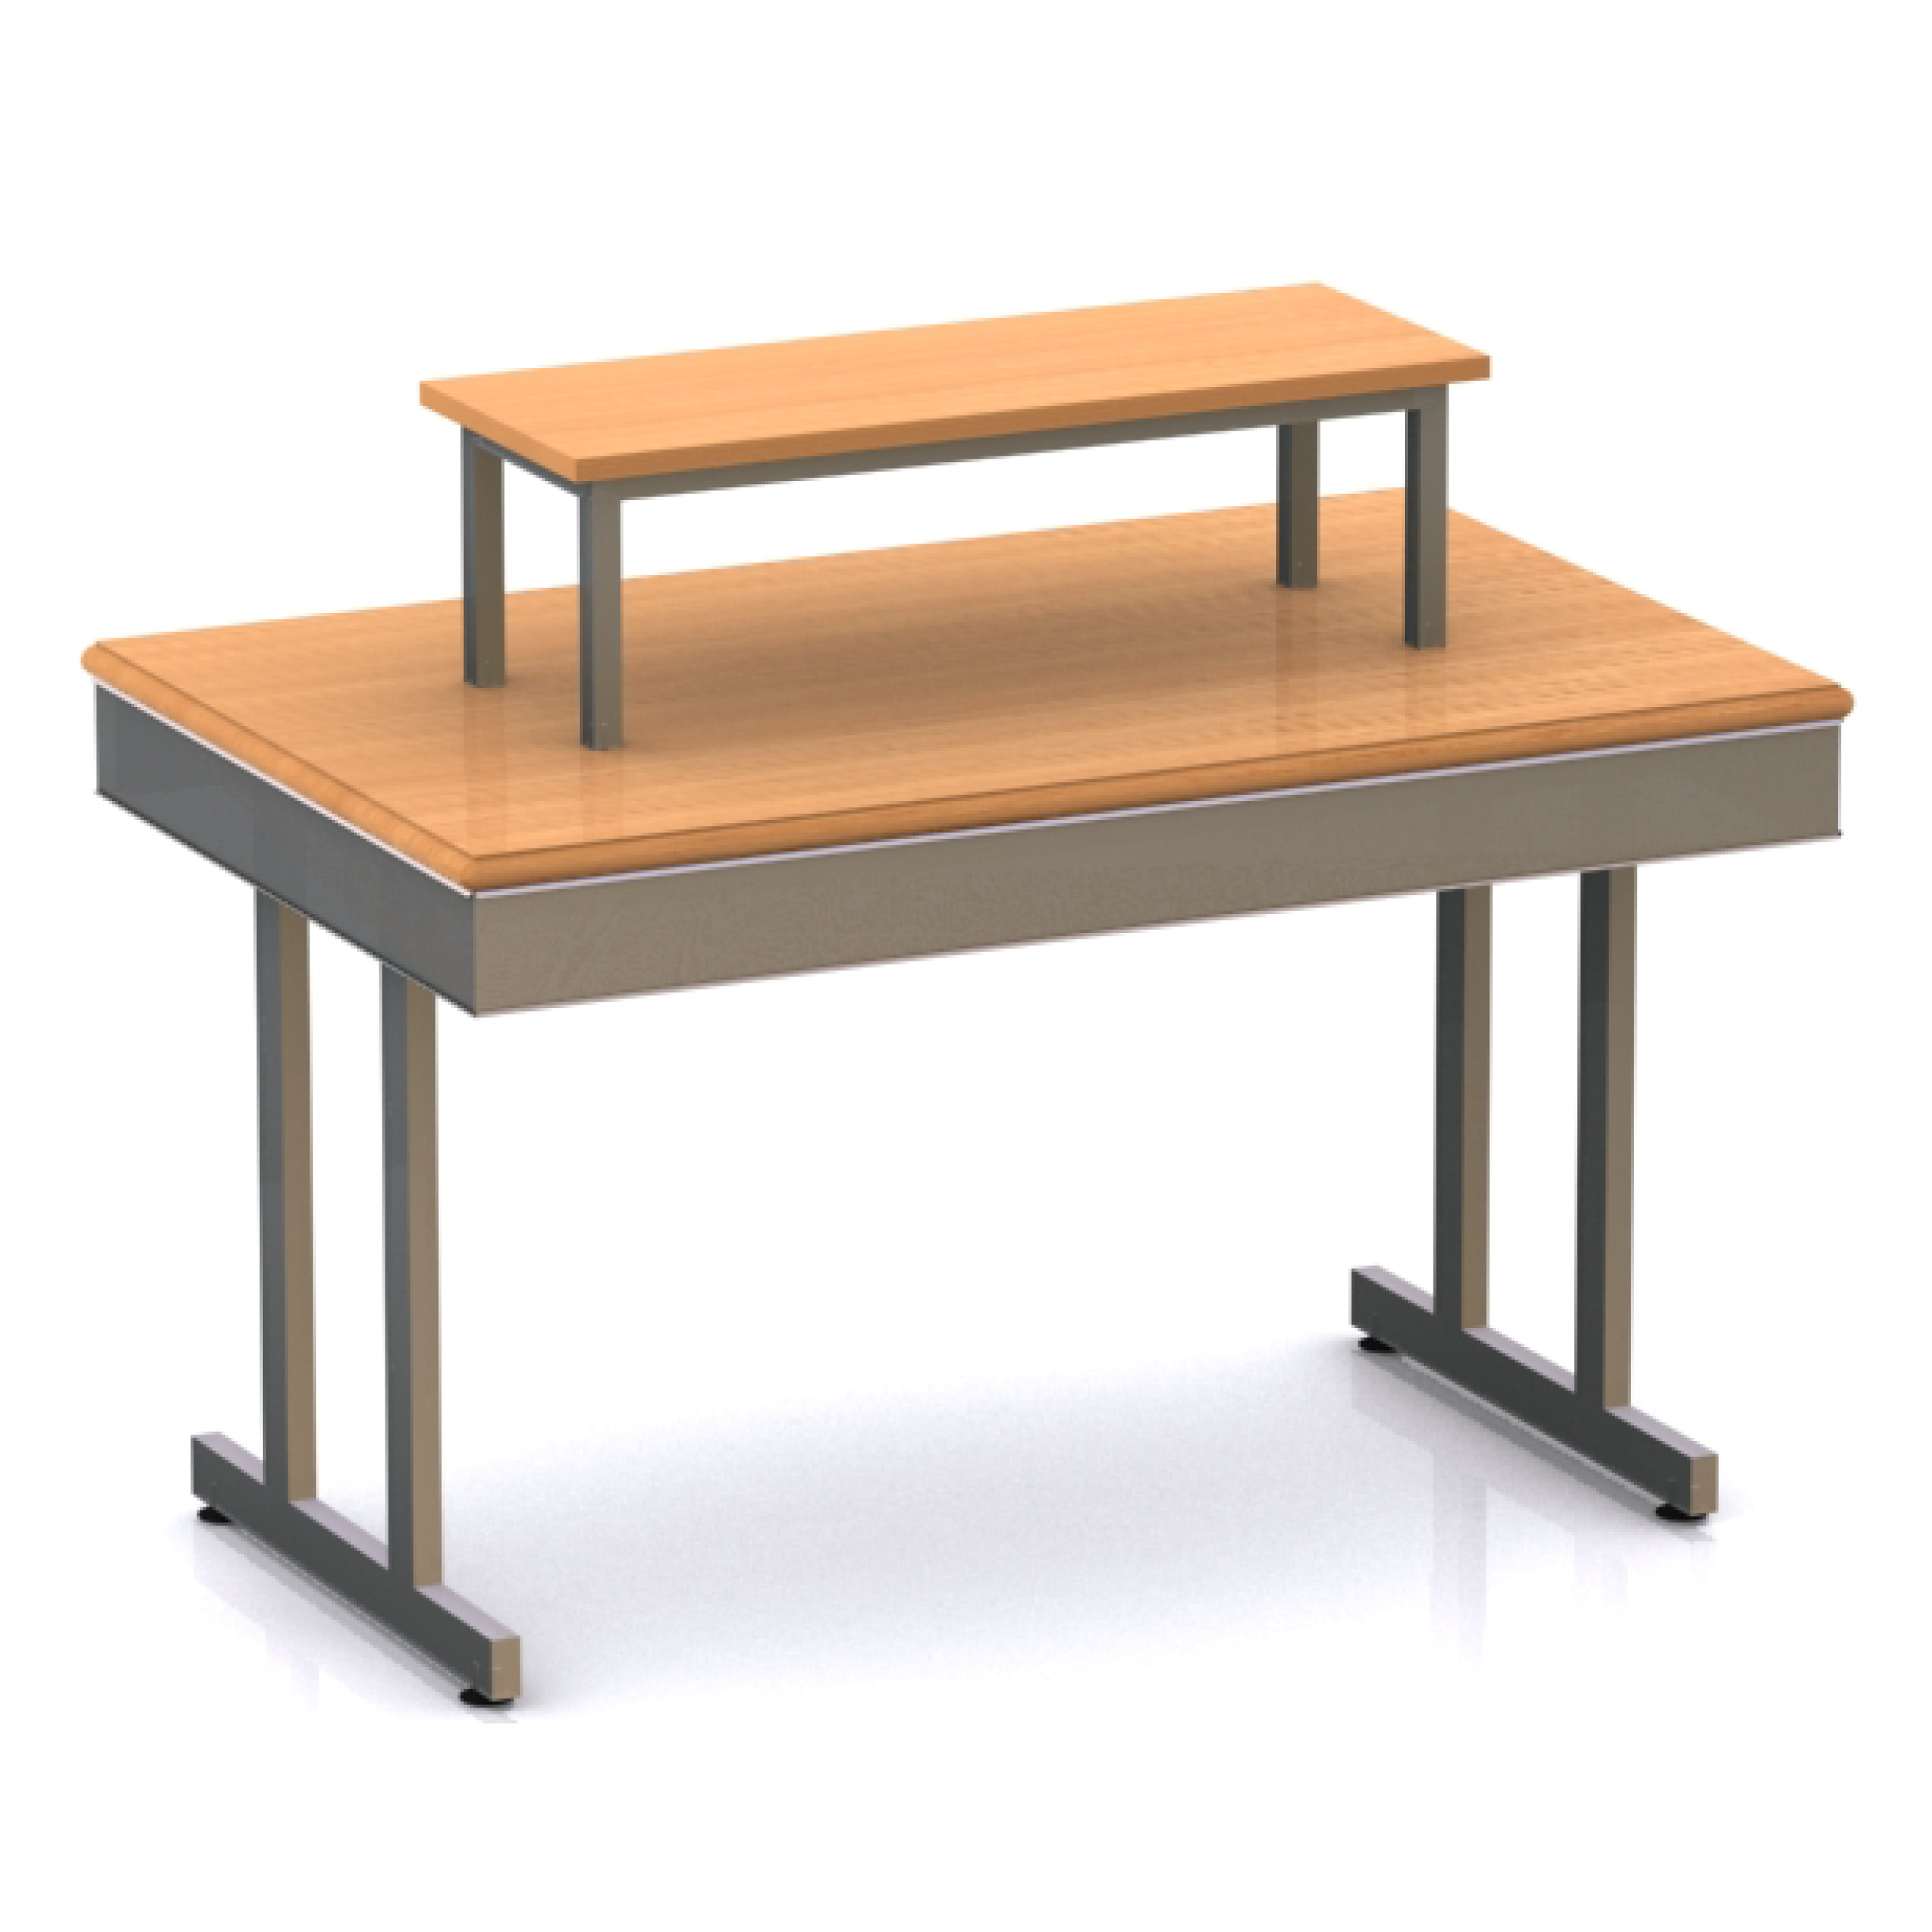 Two-tiered-table-2.jpg